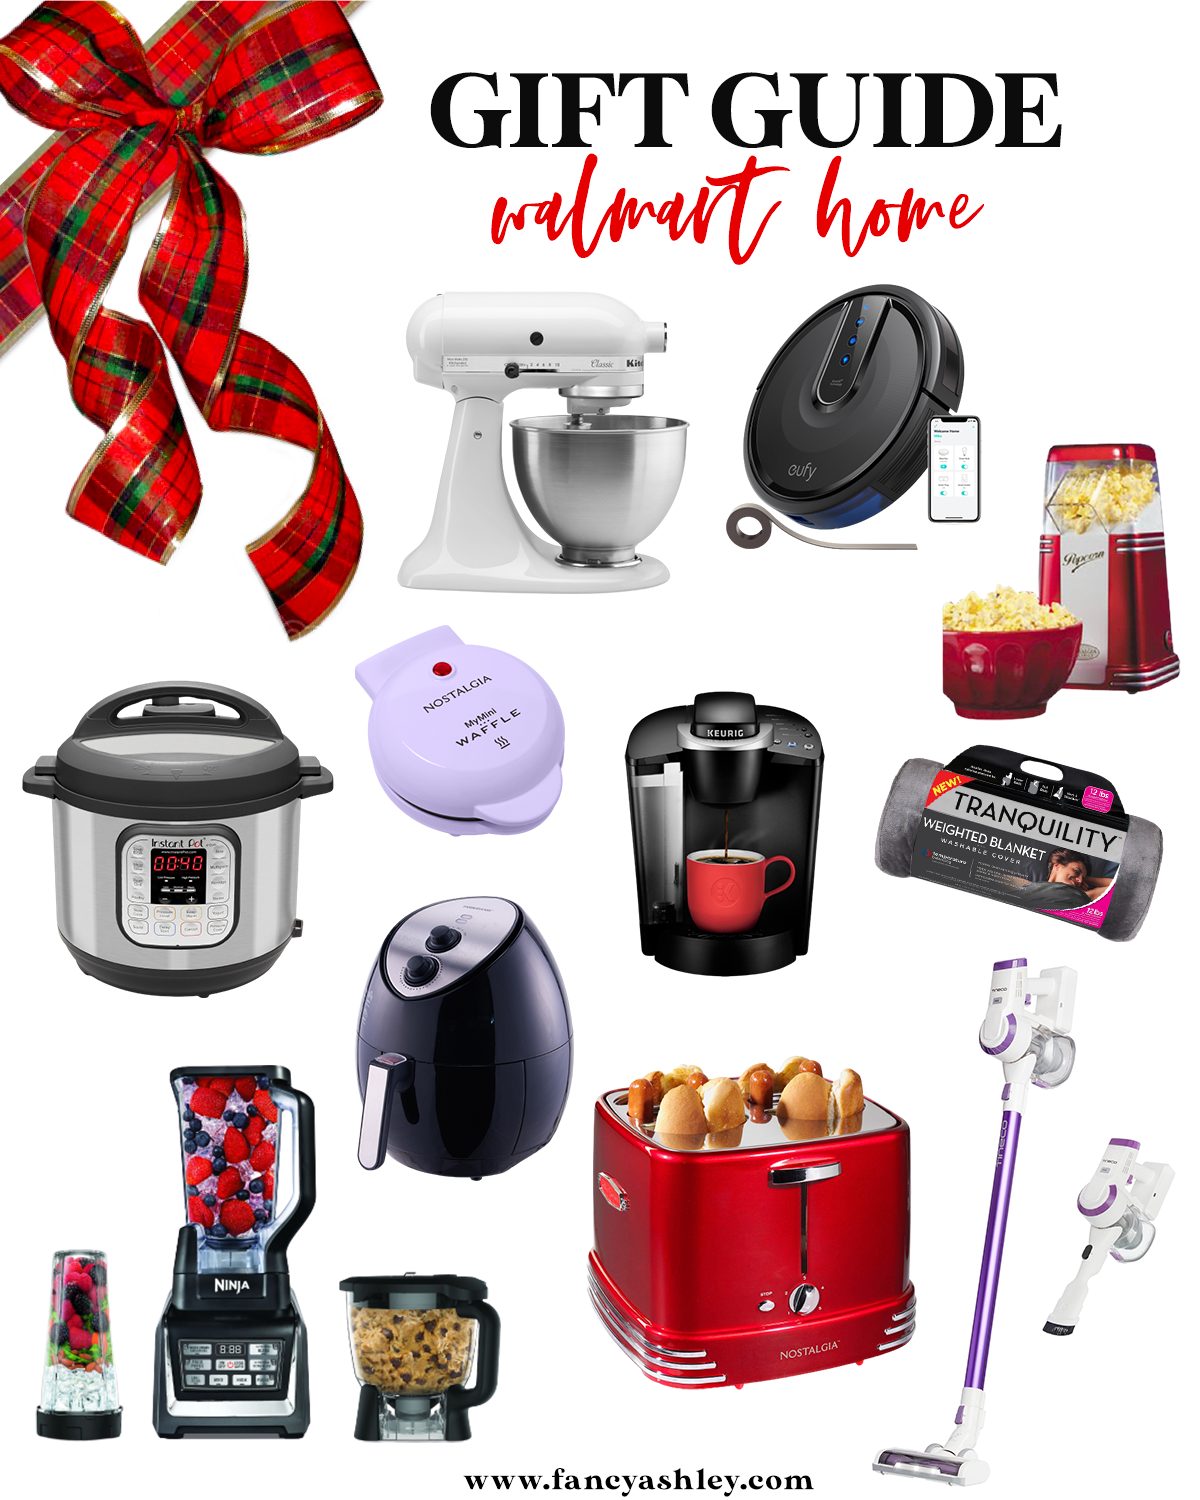 Walmart Gift Ideas by popular Houston life and style blog, Fancy Ashley: collage image of a roomba vacuum, Insta Pot, mini waffle iron, hot dog and bun toaster, Ninja blender, Tranquility weighted blanket, coffee maker, popcorn popping machine, white Kitchen aid, air fryer and stick vac.